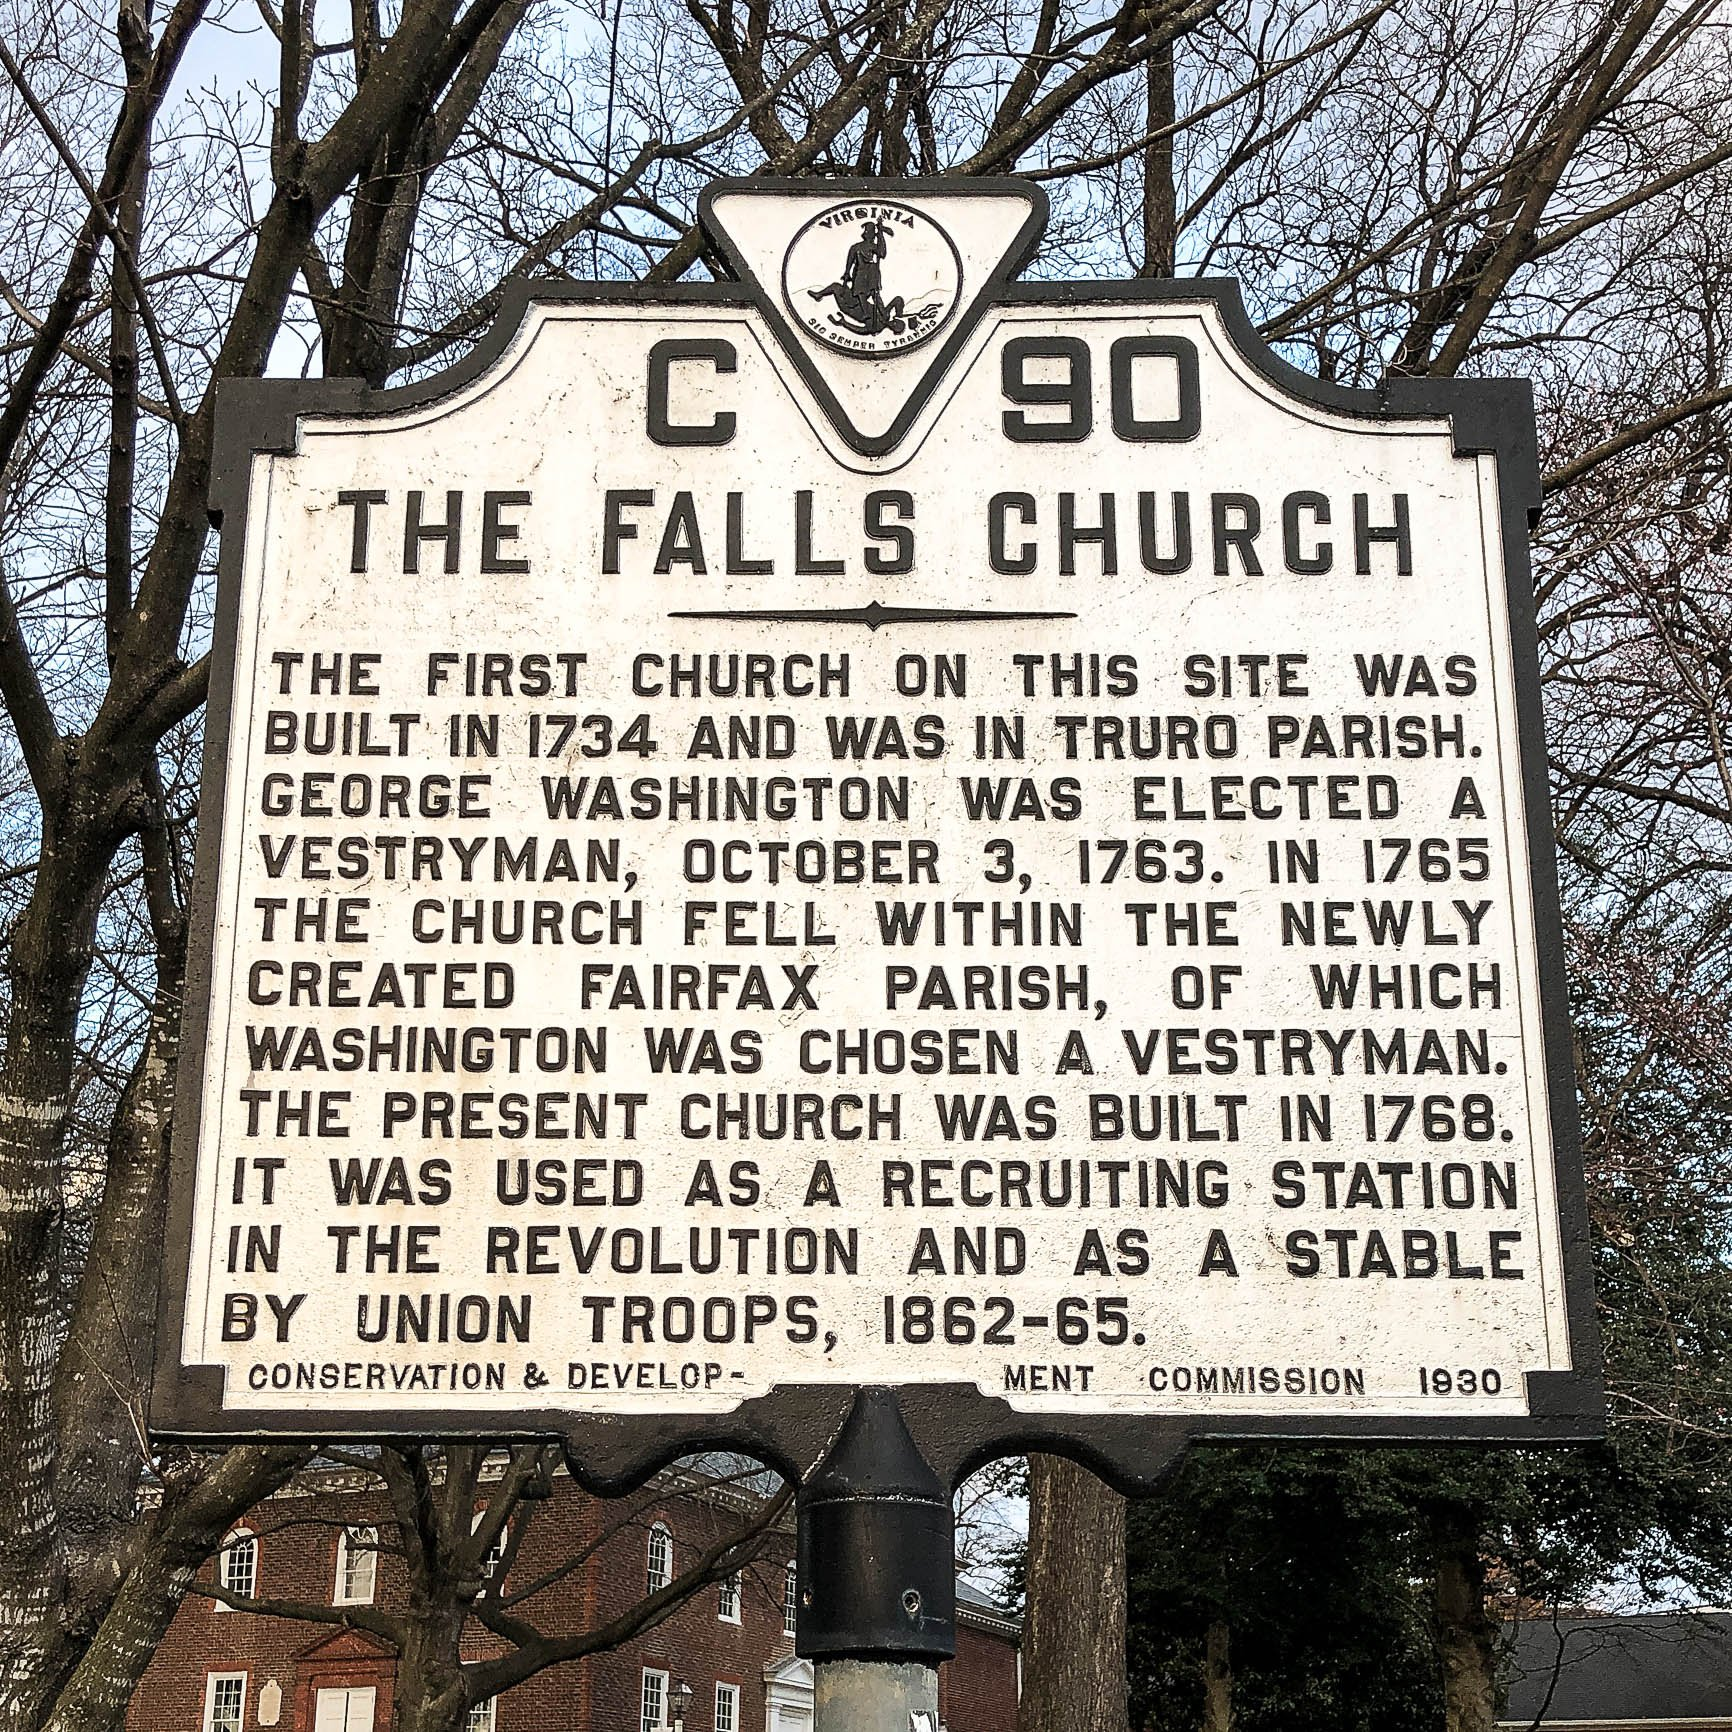 The Falls Church historical marker